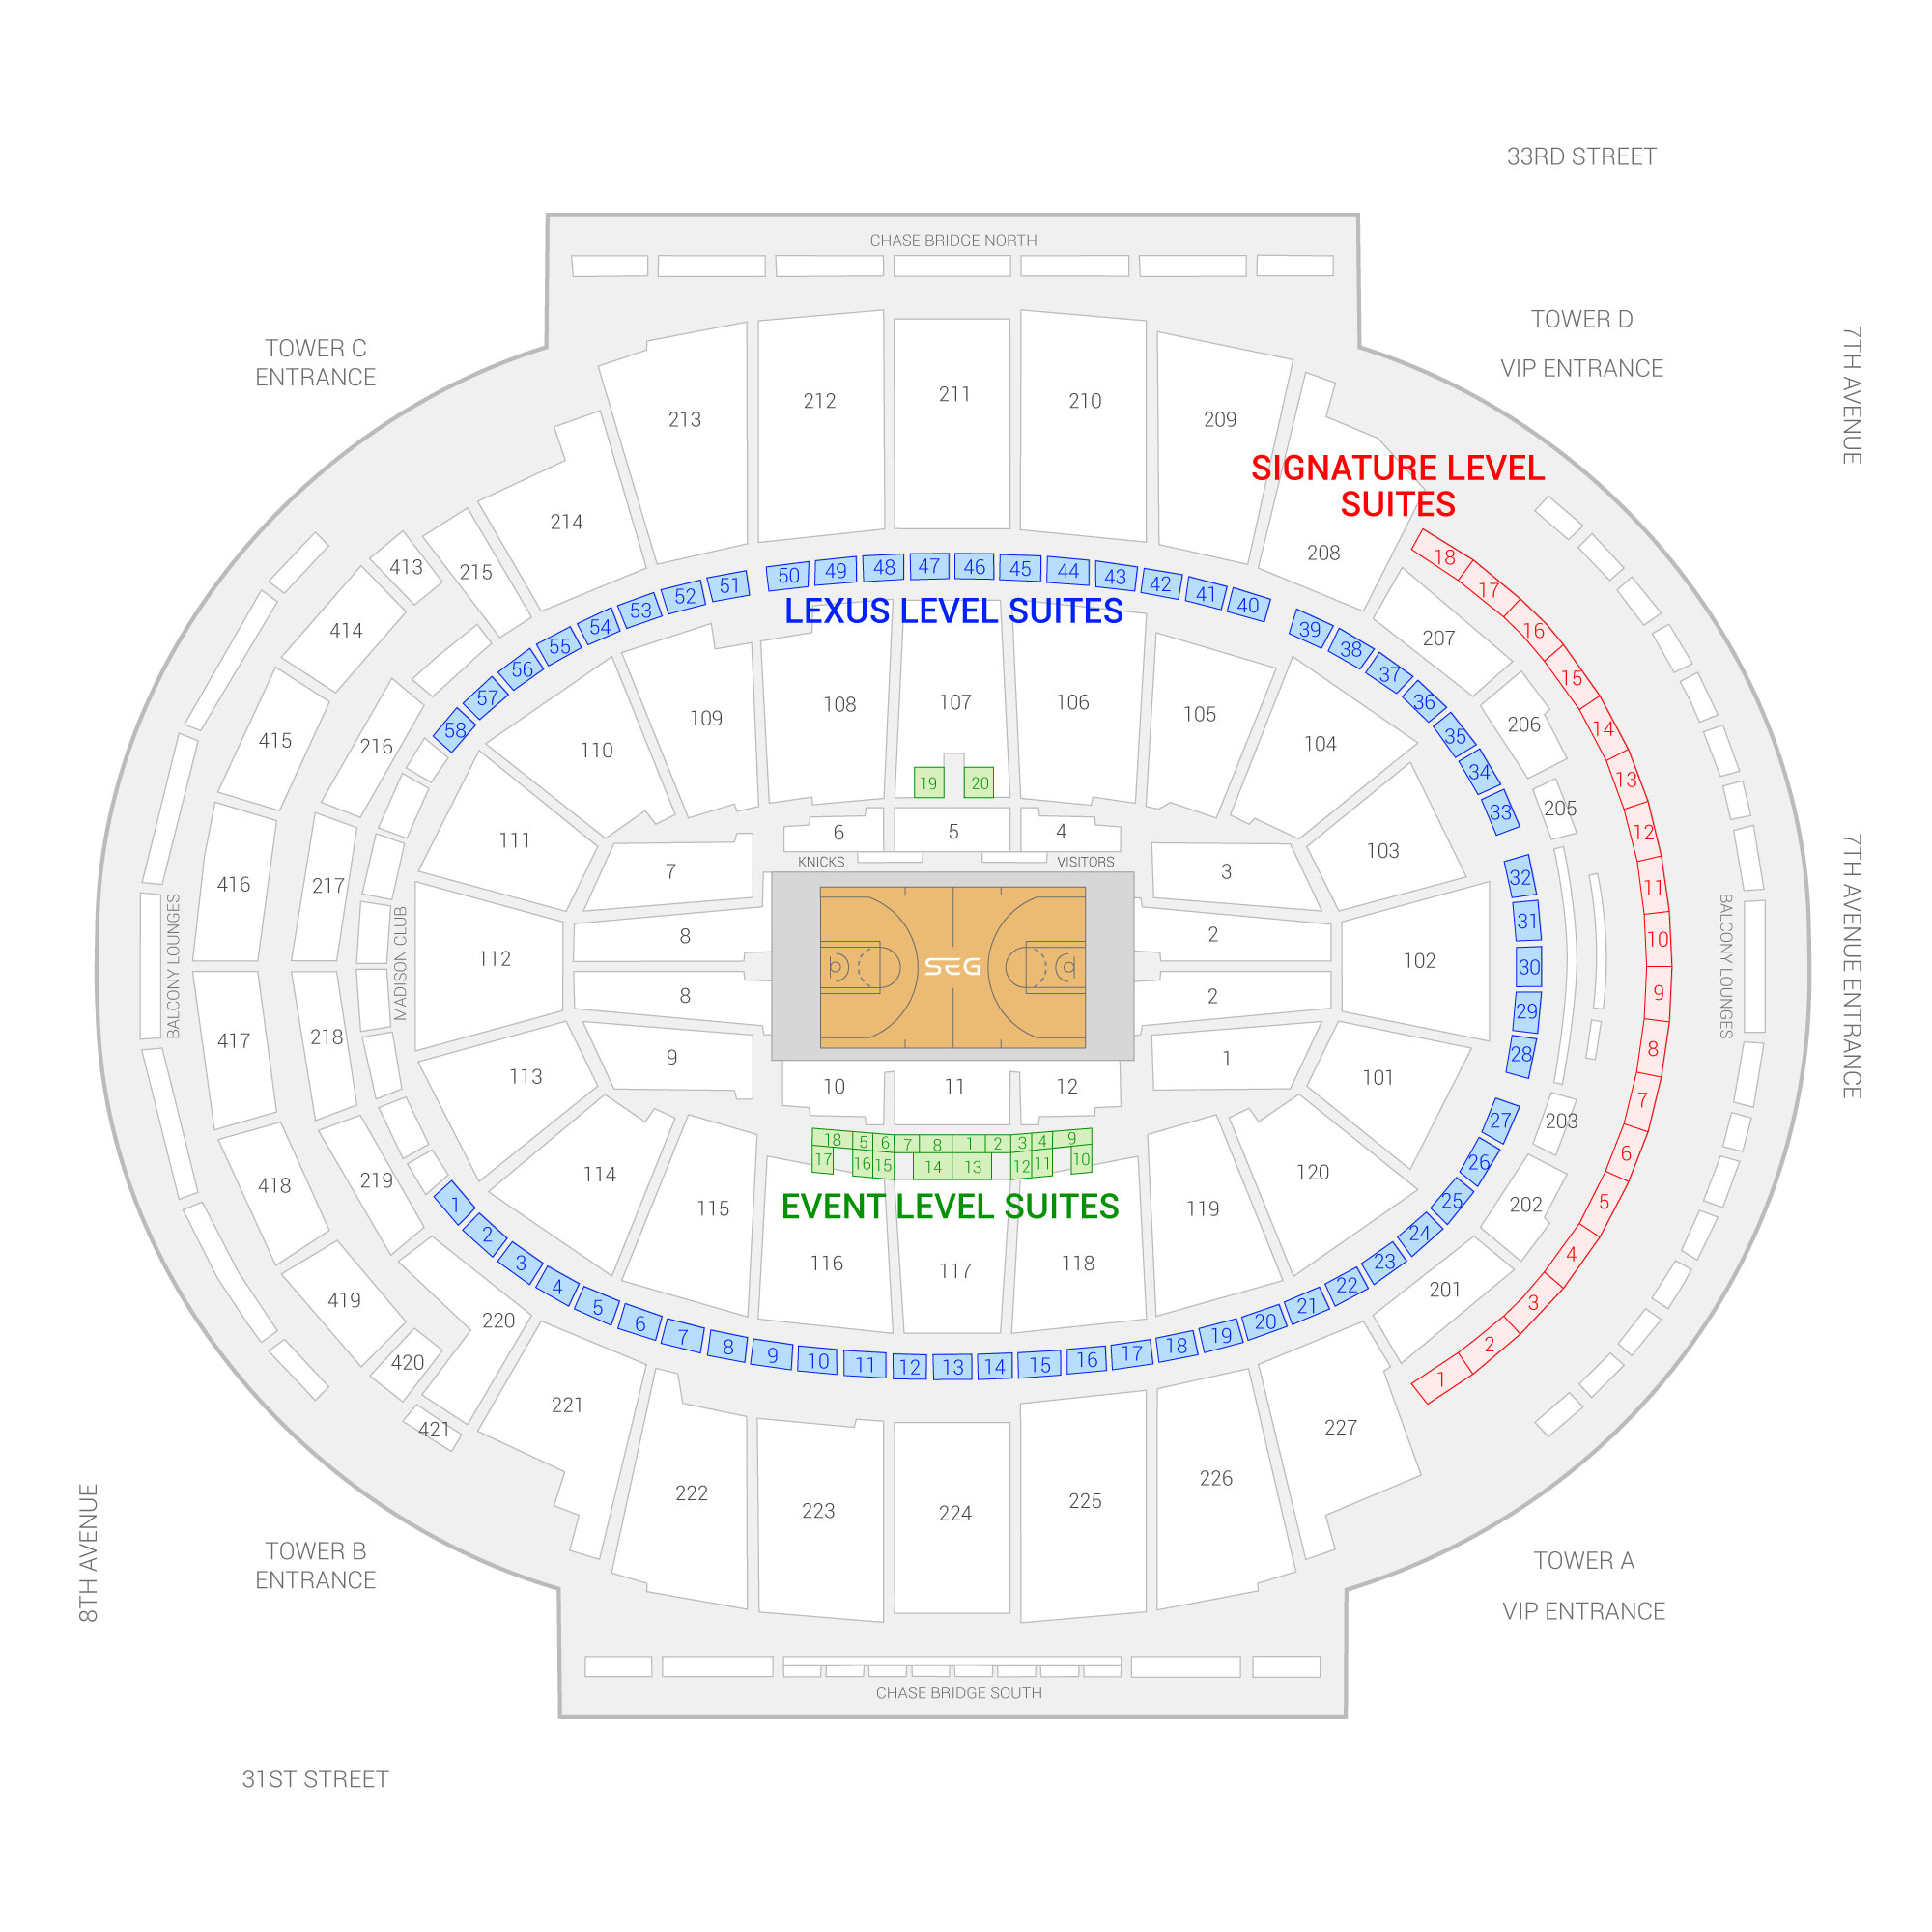 Madison Square Garden / New York Knicks Suite Map and Seating Chart